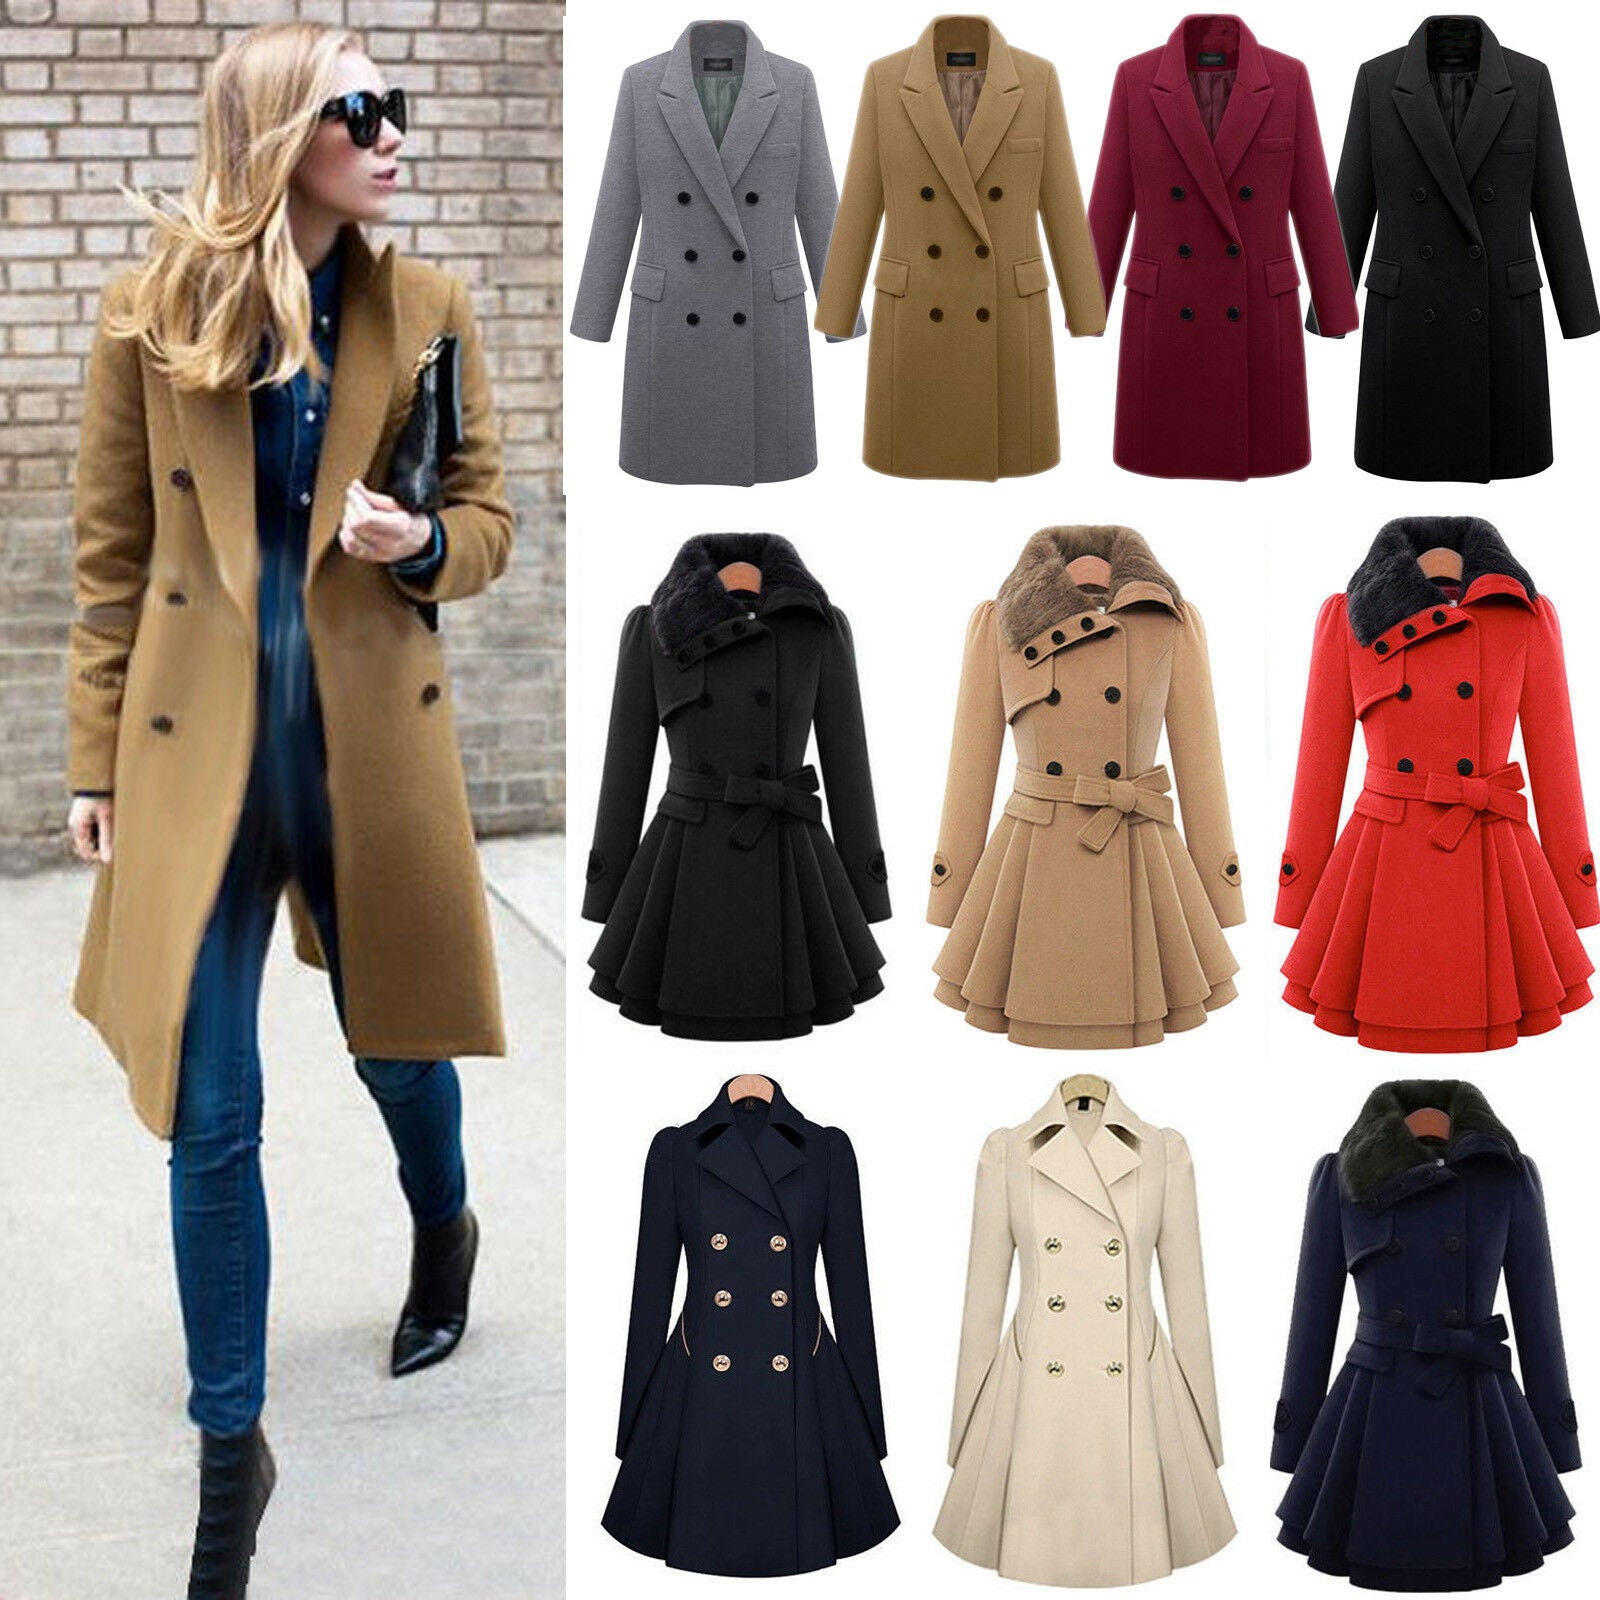 Women Winter Warm Slim Suit Long Peacoat Coat Trench Outwear Jacket Overcoat Dress Sweater